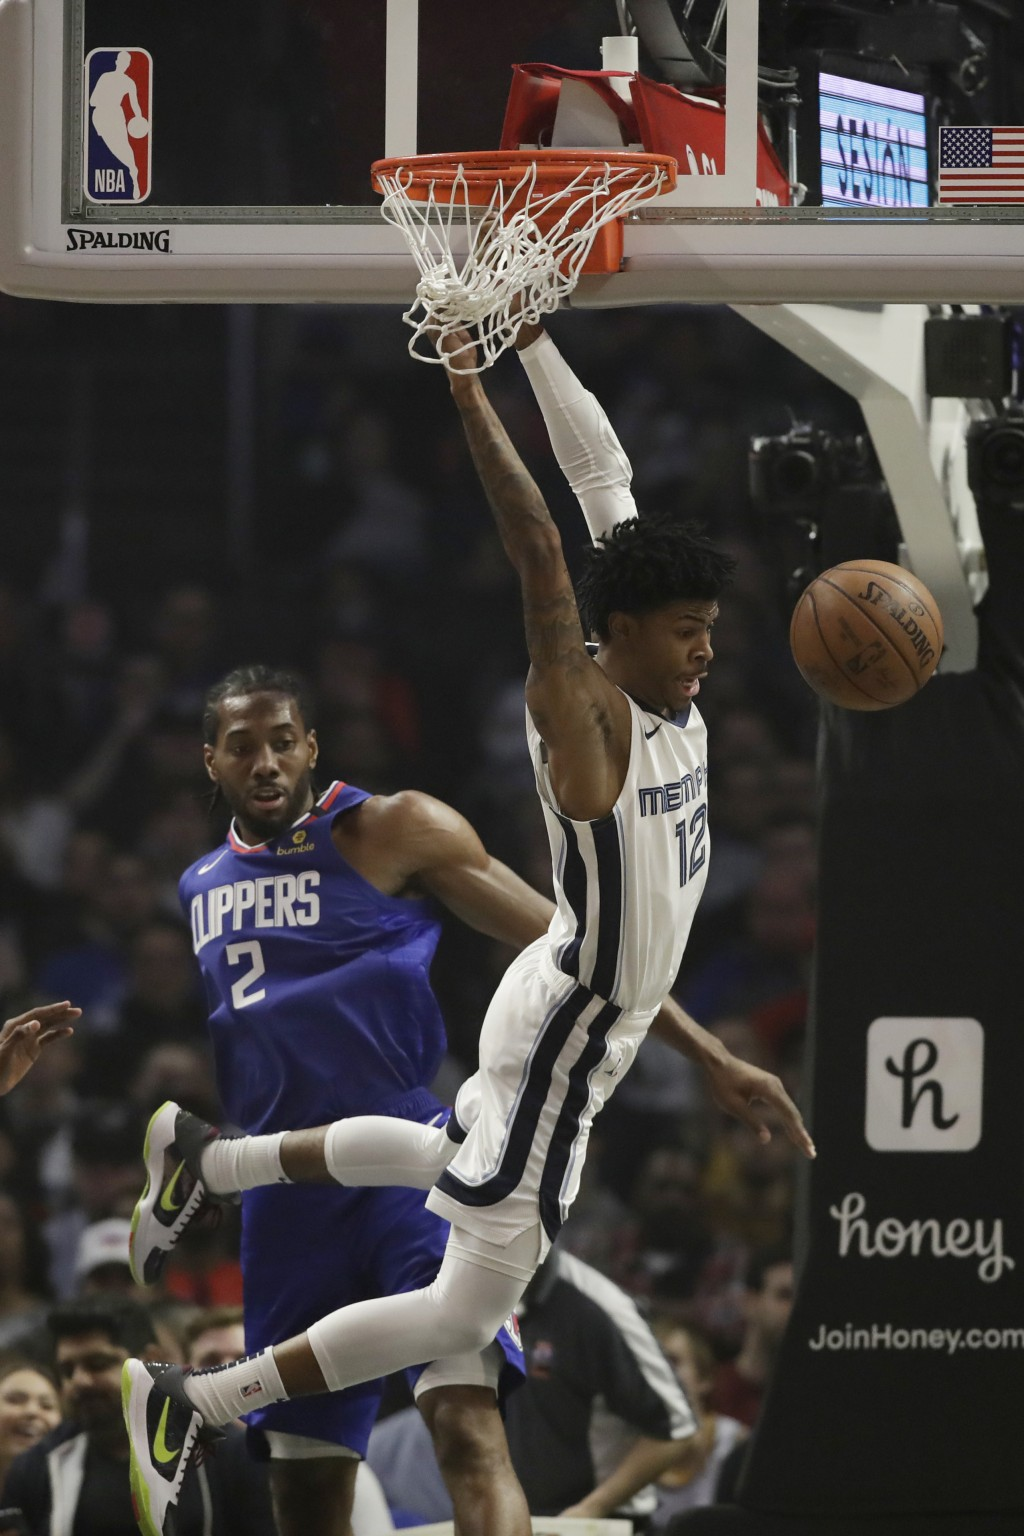 Memphis Grizzlies' Ja Morant (12) misses on a dunk attempt as Los Angeles Clippers' Kawhi Leonard (2) defends during the first half of an NBA basketba...